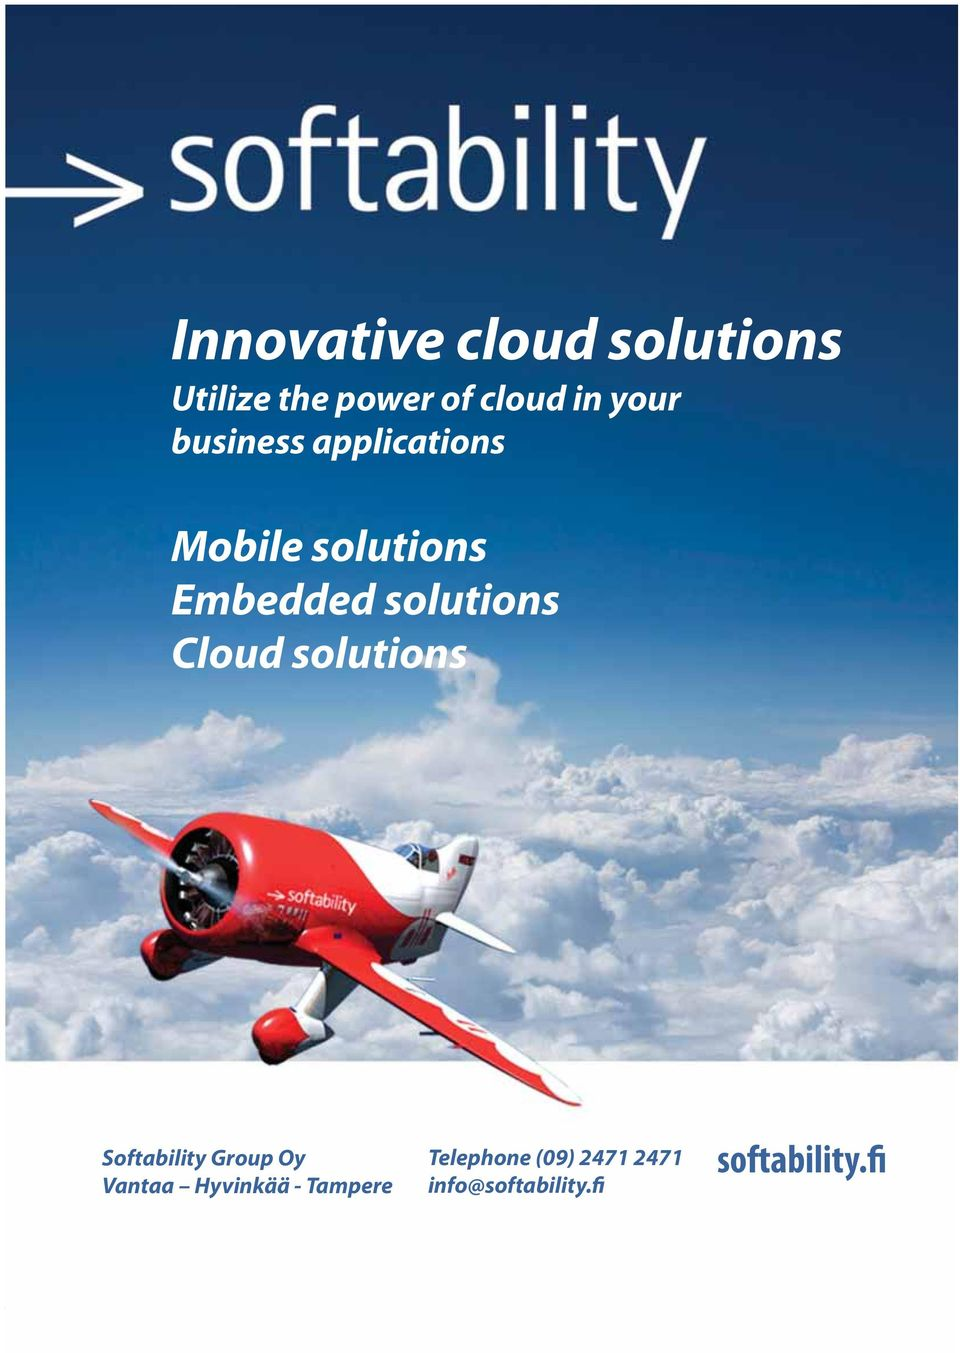 solutions Cloud solutions Softability Group Oy Vantaa